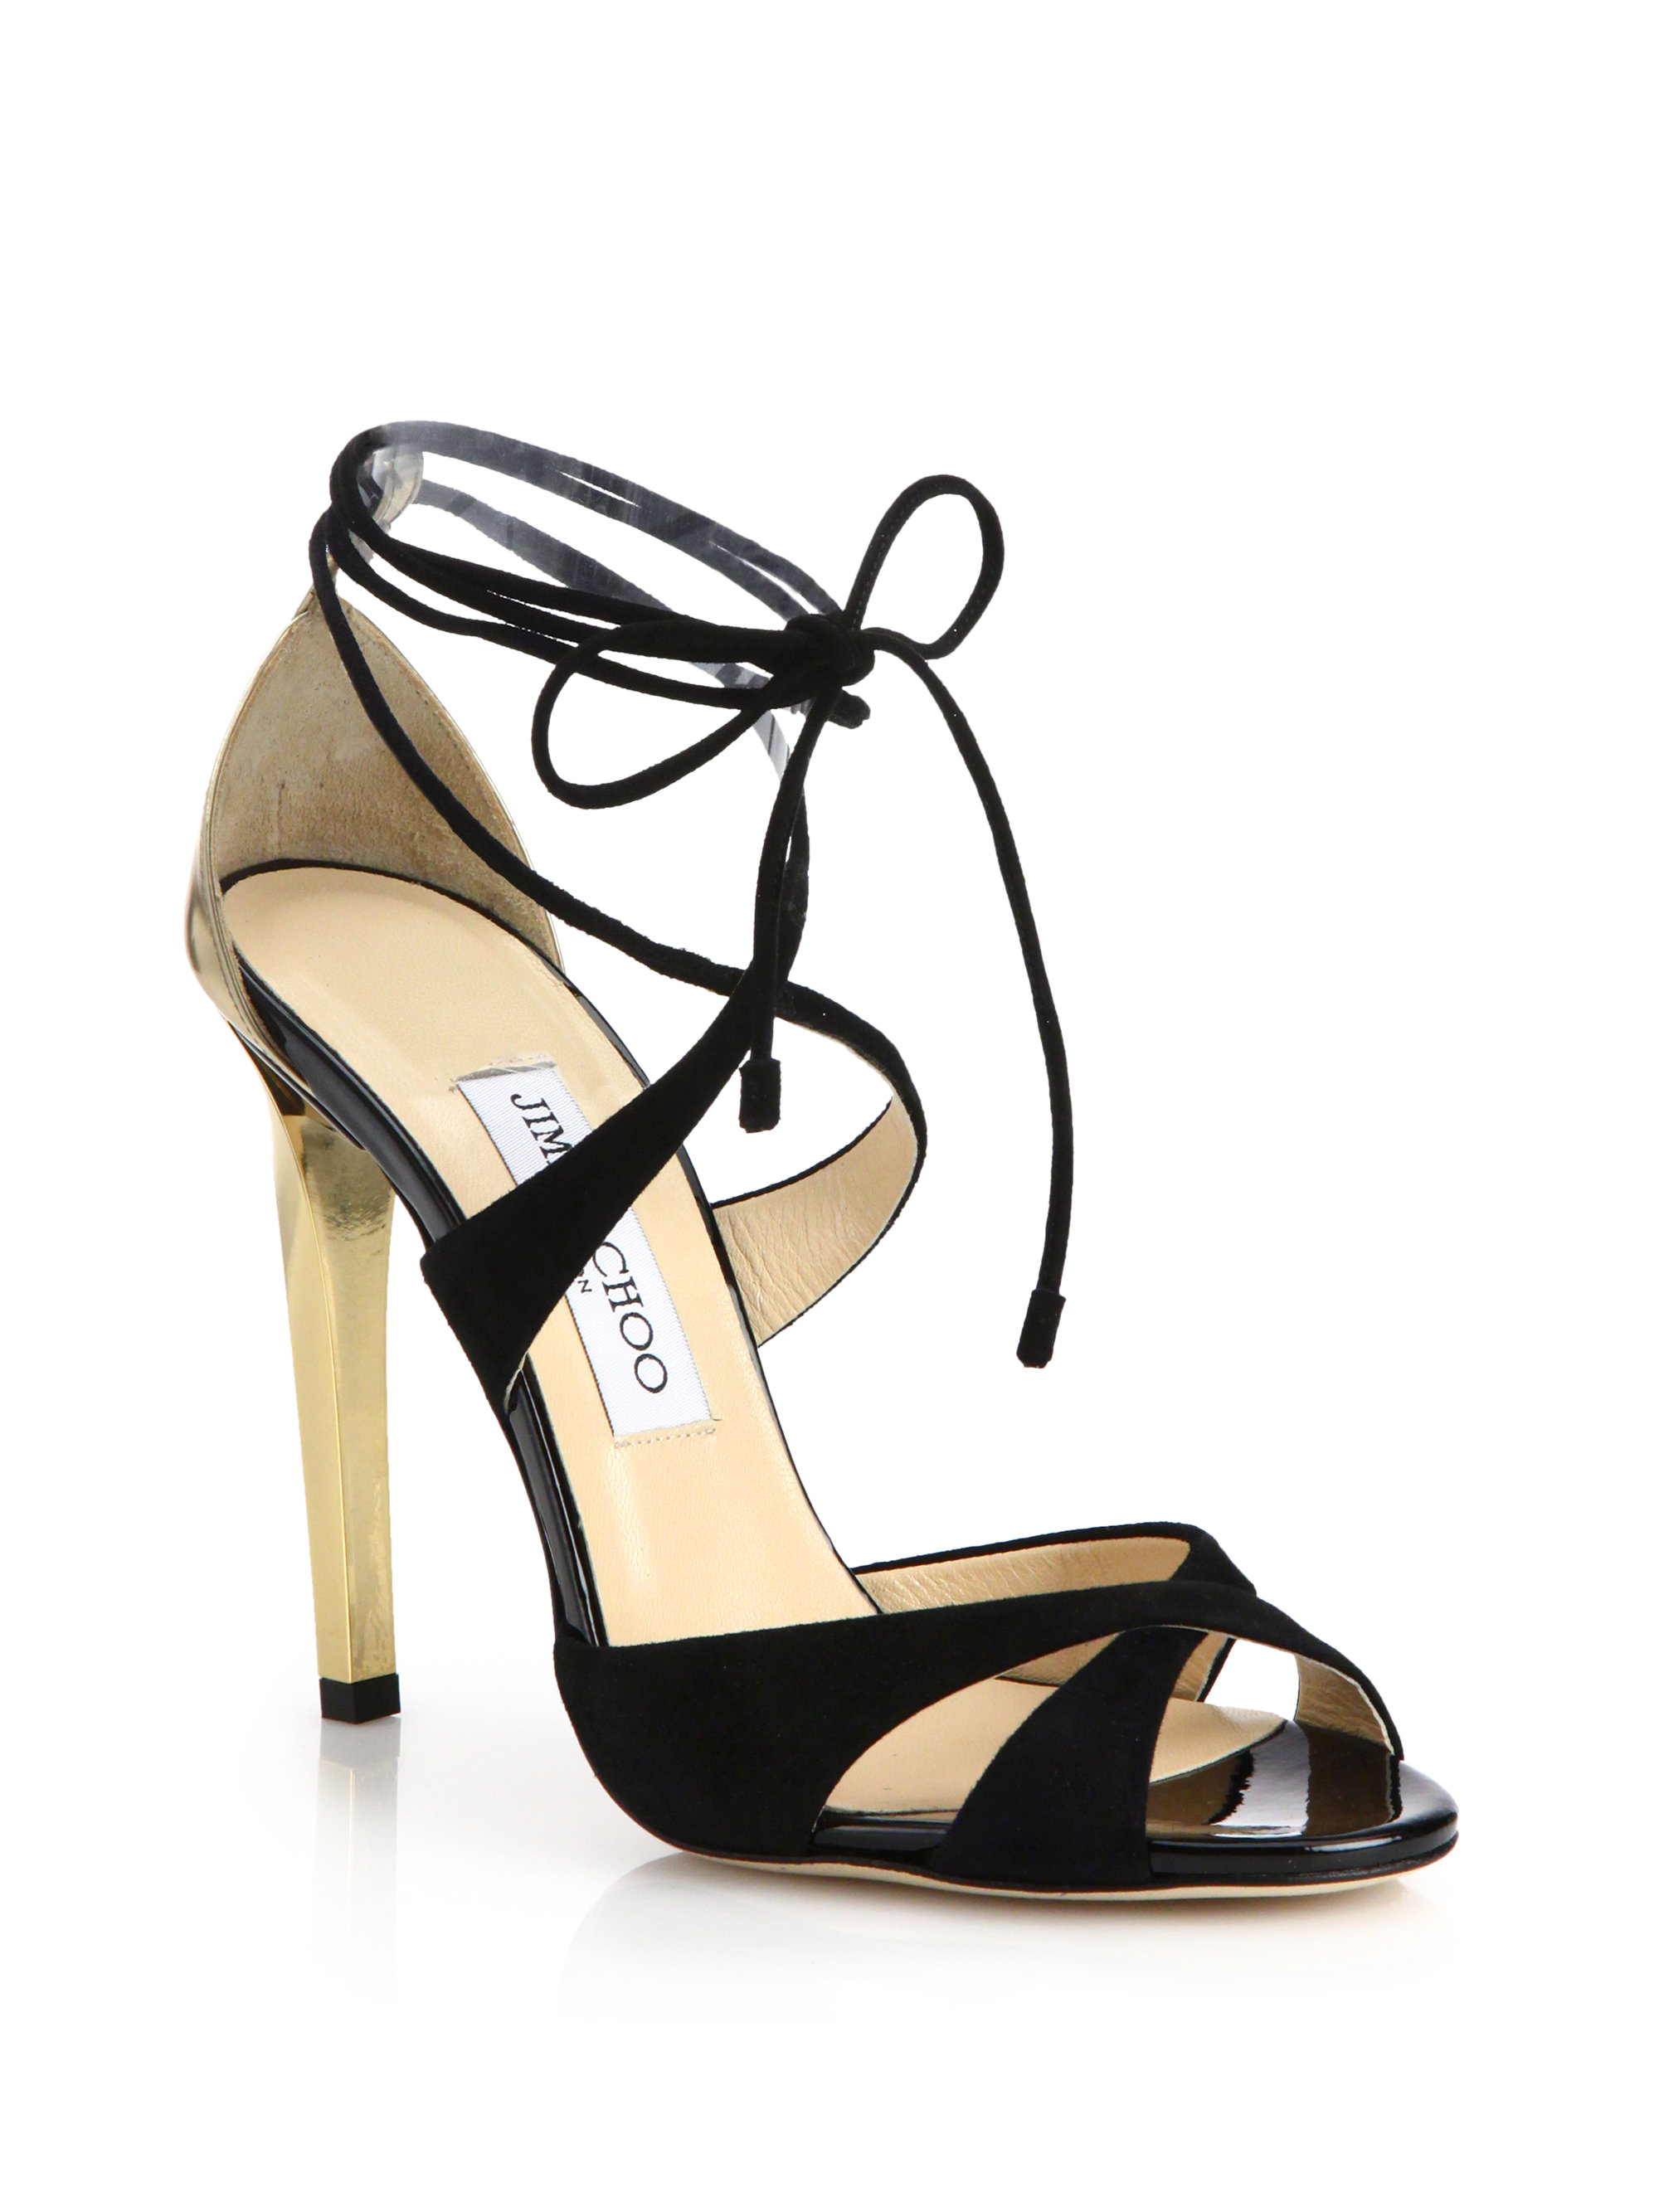 Jimmy Choo Woven Tie Sandals really for sale 100% authentic for sale cheap sale shopping online buy cheap for nice fashion Style online HpDrTifZ